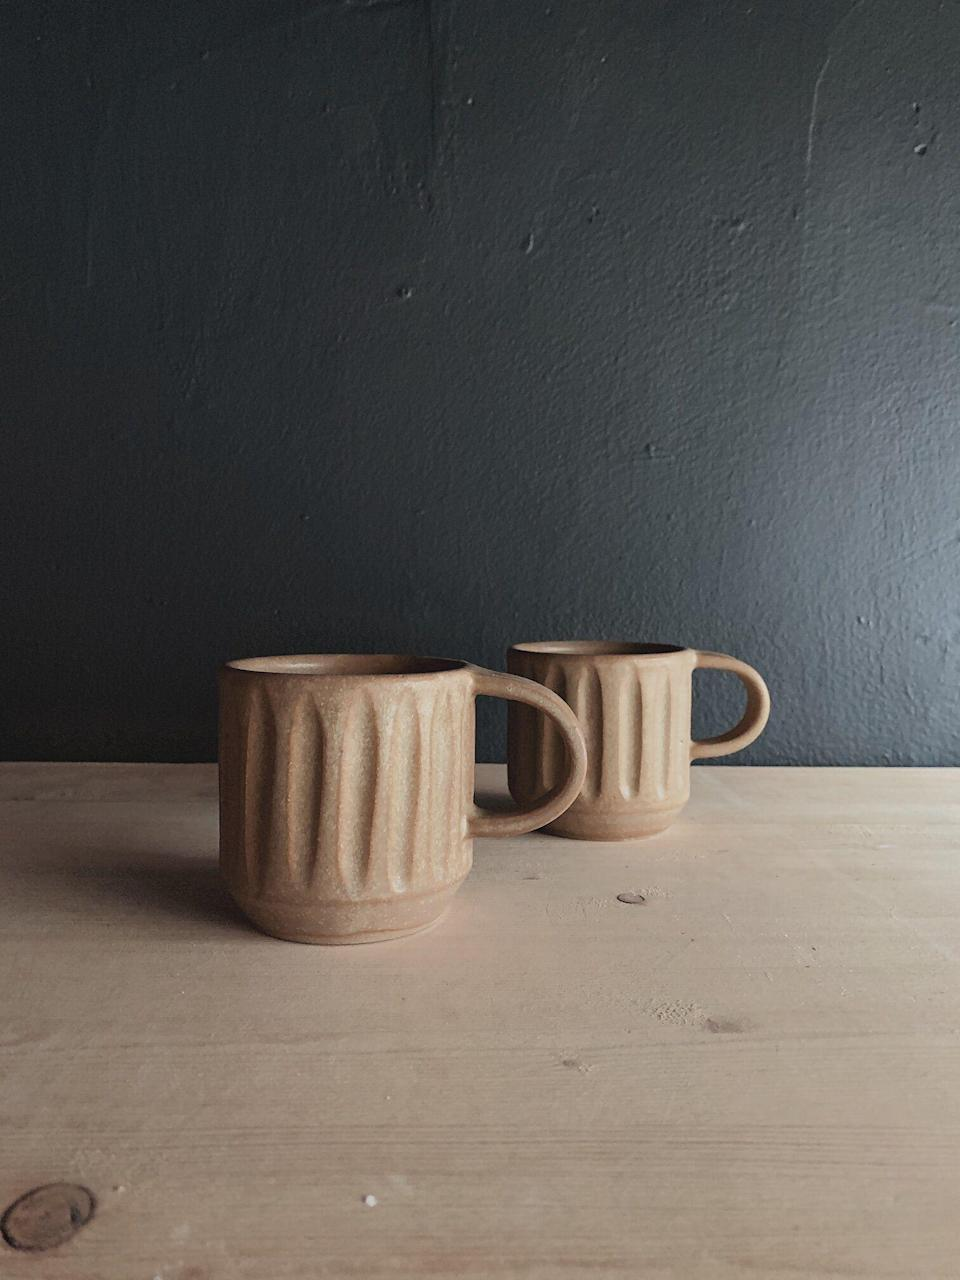 """<p>samleehello.com</p><p><strong>$40.00</strong></p><p><a href=""""https://www.samleehello.com/shop/milo-carved-mug-aged-ochre"""" rel=""""nofollow noopener"""" target=""""_blank"""" data-ylk=""""slk:SHOP NOW"""" class=""""link rapid-noclick-resp"""">SHOP NOW</a></p><p>Pro potter and illustrator Sam Lee sells mugs, vases, light pendants, and art prints. The ceramics expert also owns the San Francisco-based <a href=""""https://www.dustedandblue.com/"""" rel=""""nofollow noopener"""" target=""""_blank"""" data-ylk=""""slk:Dusted and Blue Pottery Studio and Shop"""" class=""""link rapid-noclick-resp"""">Dusted and Blue Pottery Studio and Shop</a>, where you can buy pottery-making tools and take classes.</p>"""